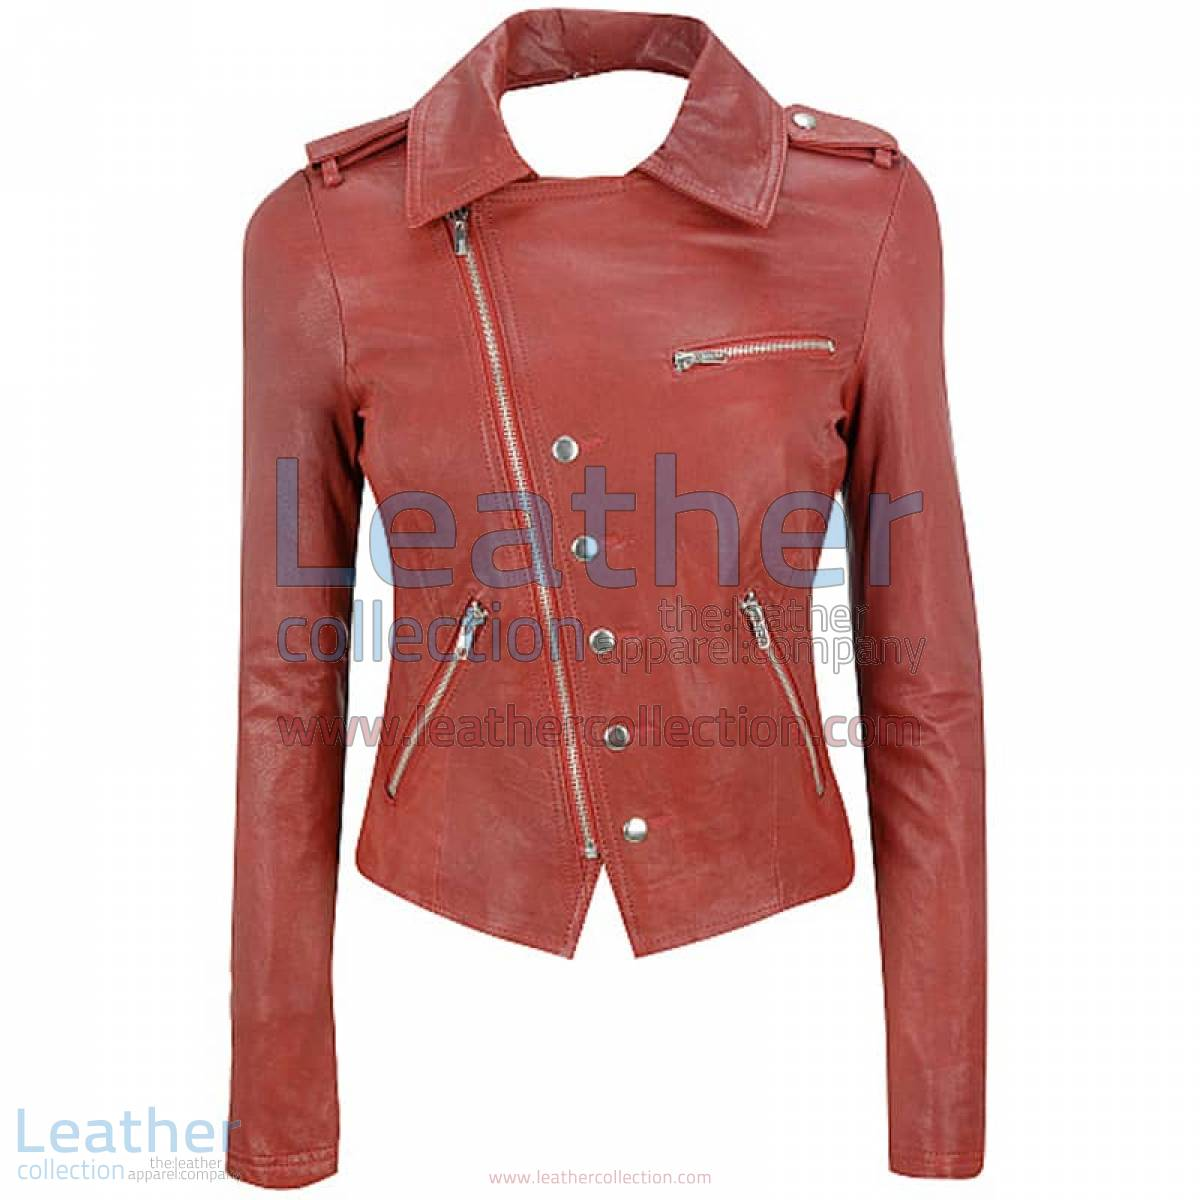 Cutaway Asymmetrical Leather Jacket Womens | asymmetrical leather jacket